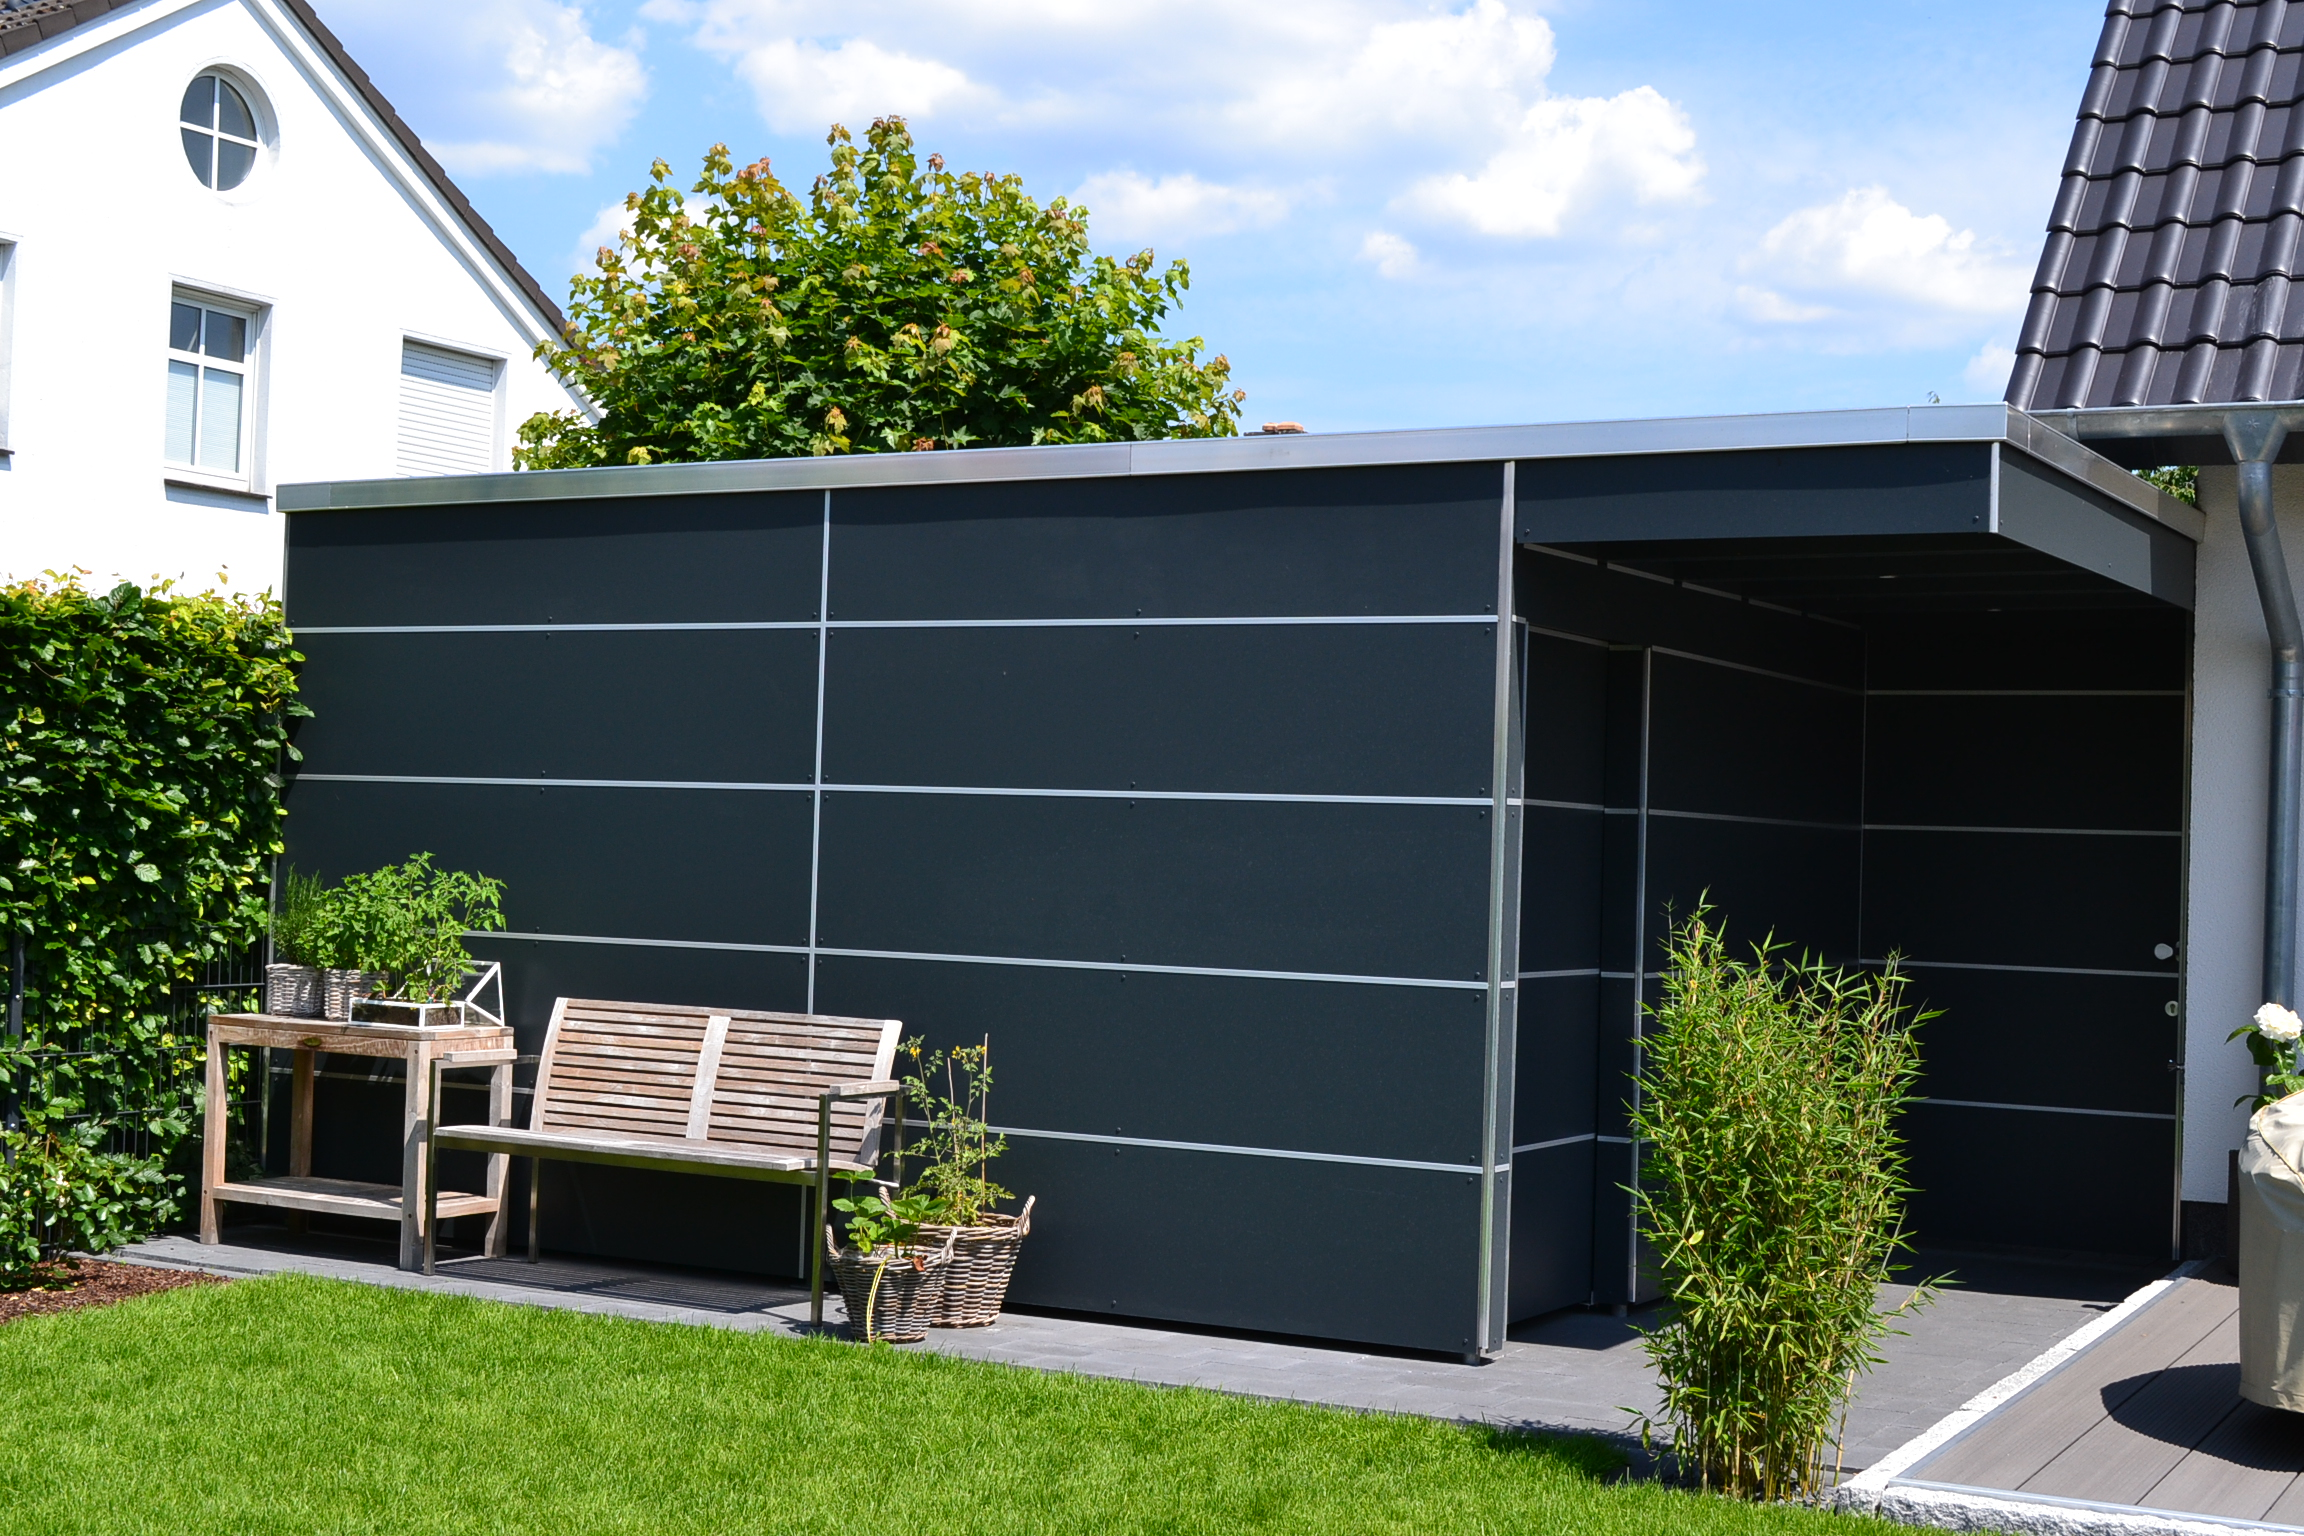 doppelcarport mit 8mm trespa platten und abstellraum in verl pollmeier holzbau gmbh. Black Bedroom Furniture Sets. Home Design Ideas